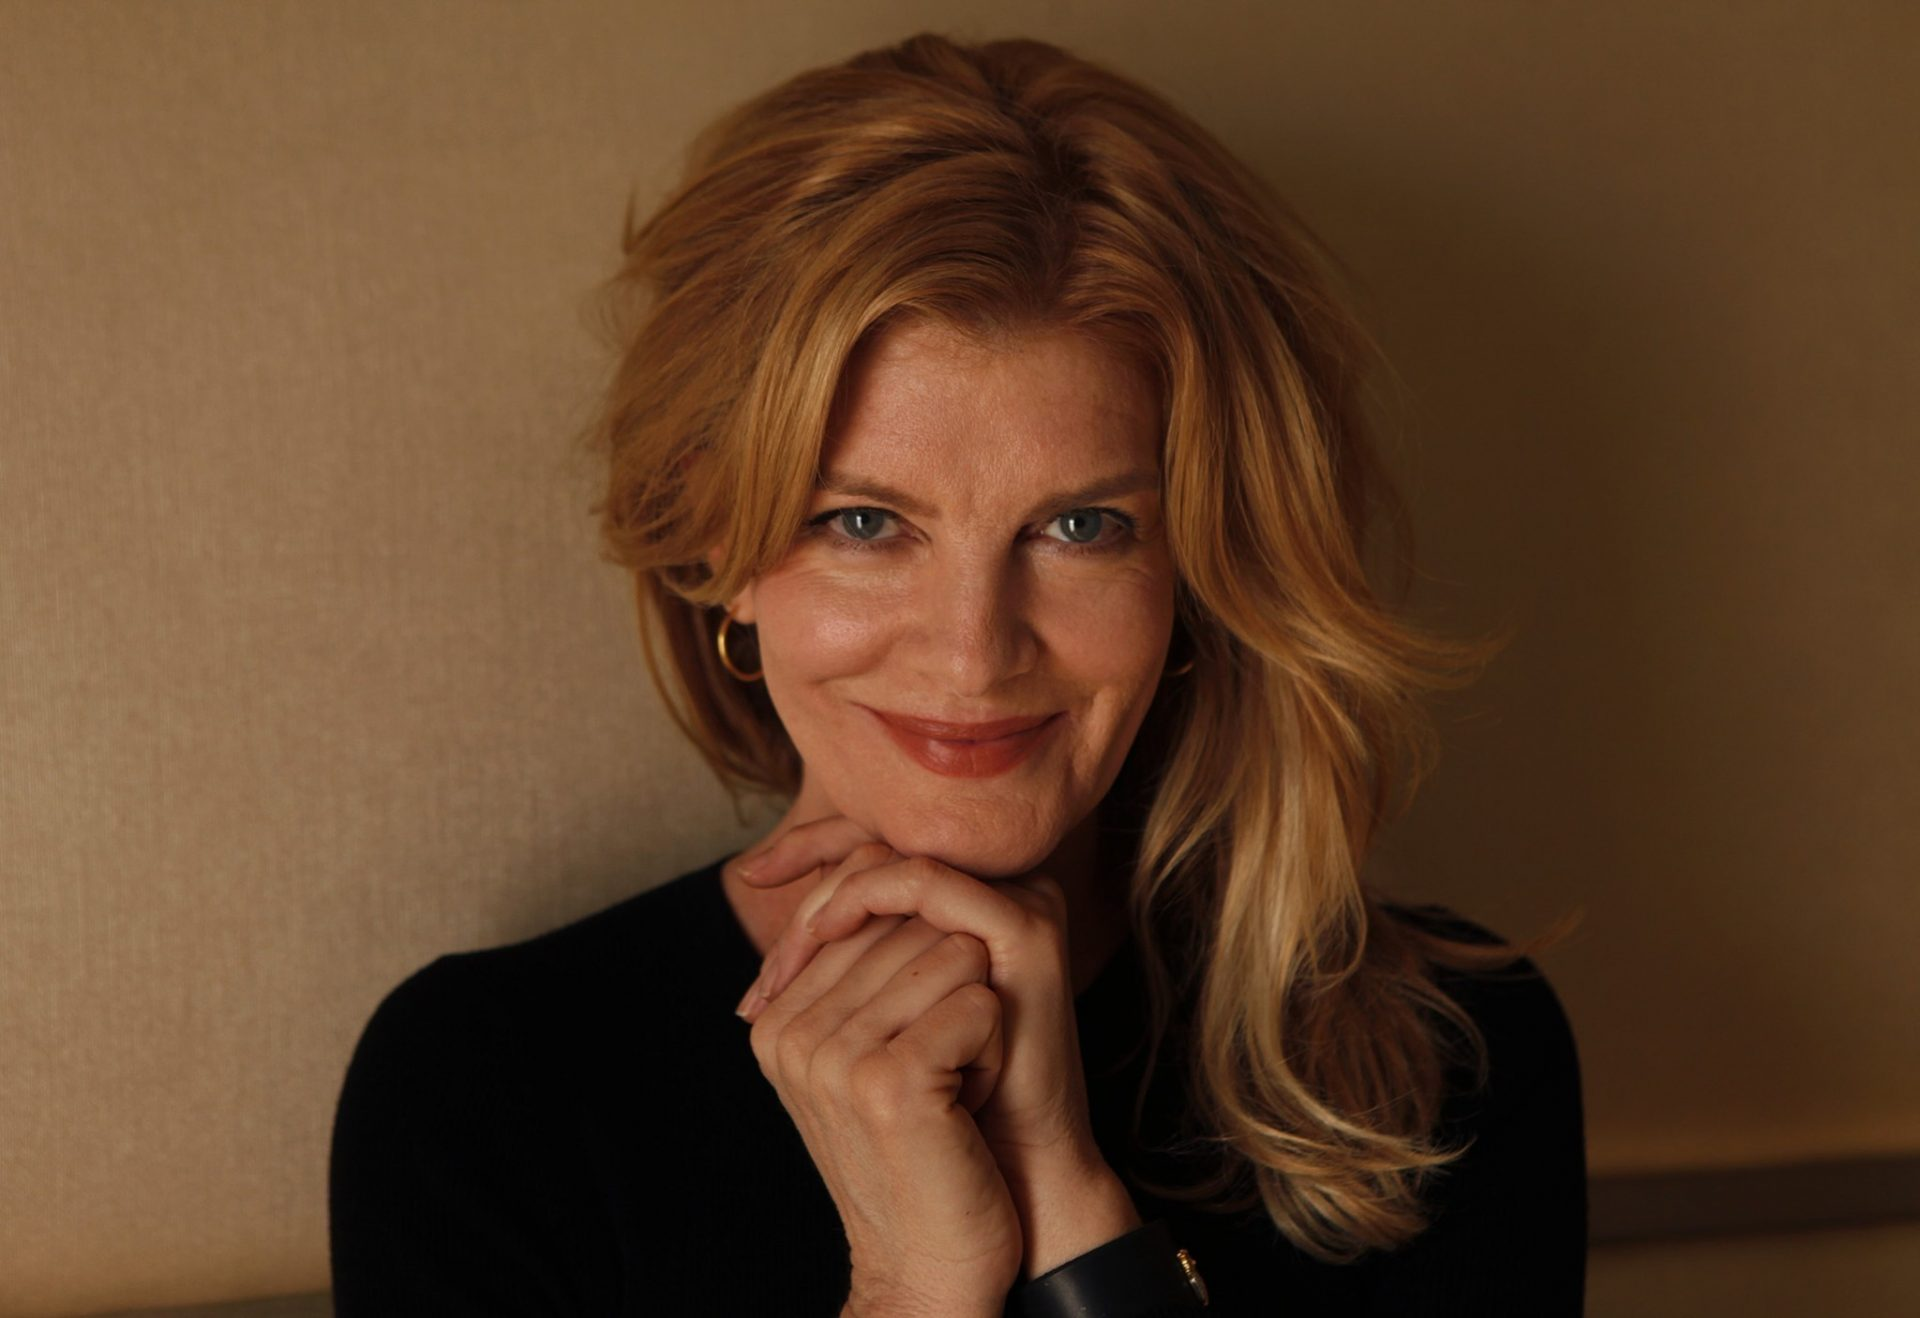 Rene Russo Family Photos, Husband, Daughter, Age, Height